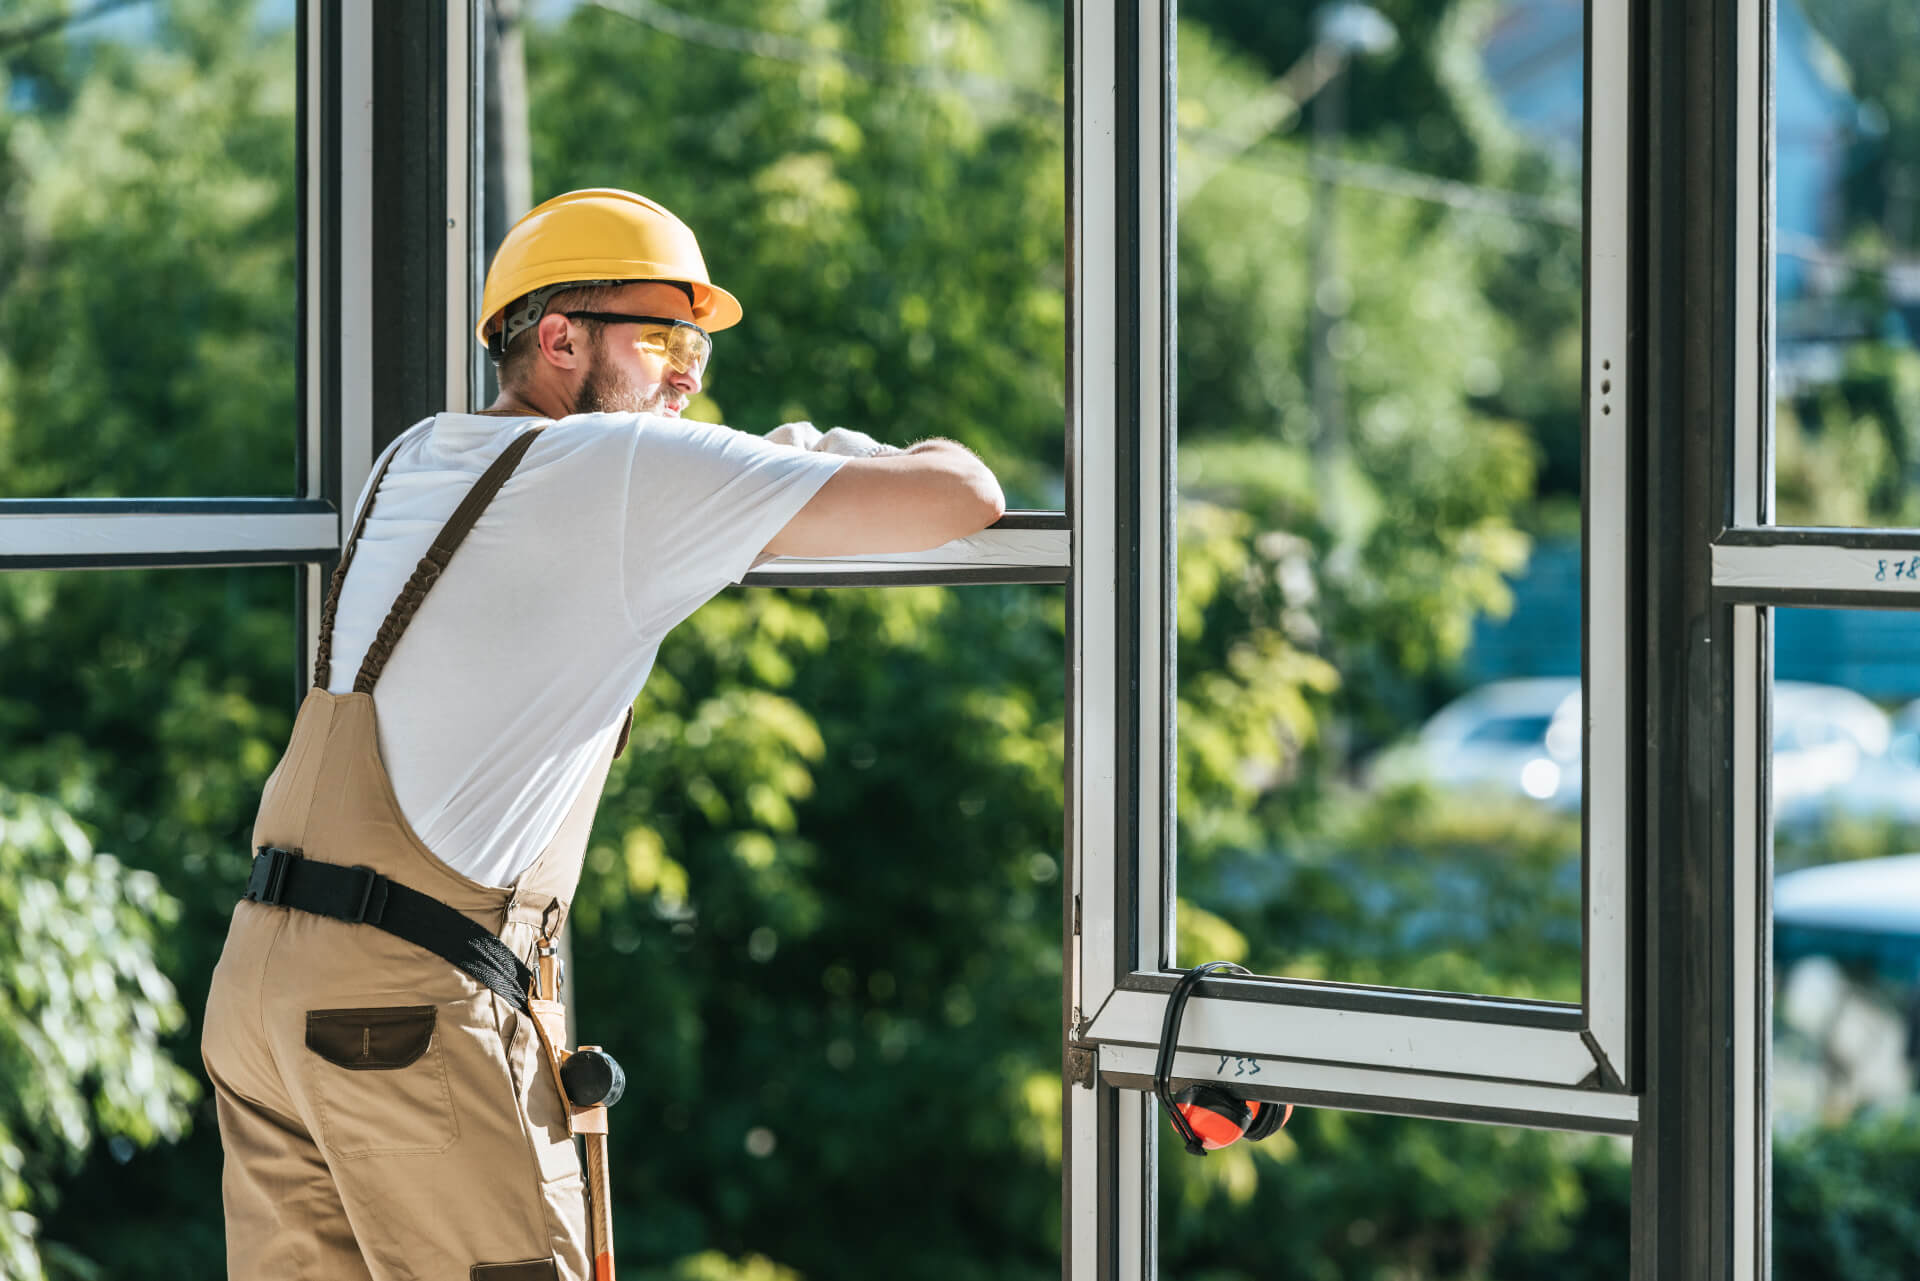 Hiring Experienced Glazier Installers and Technicians